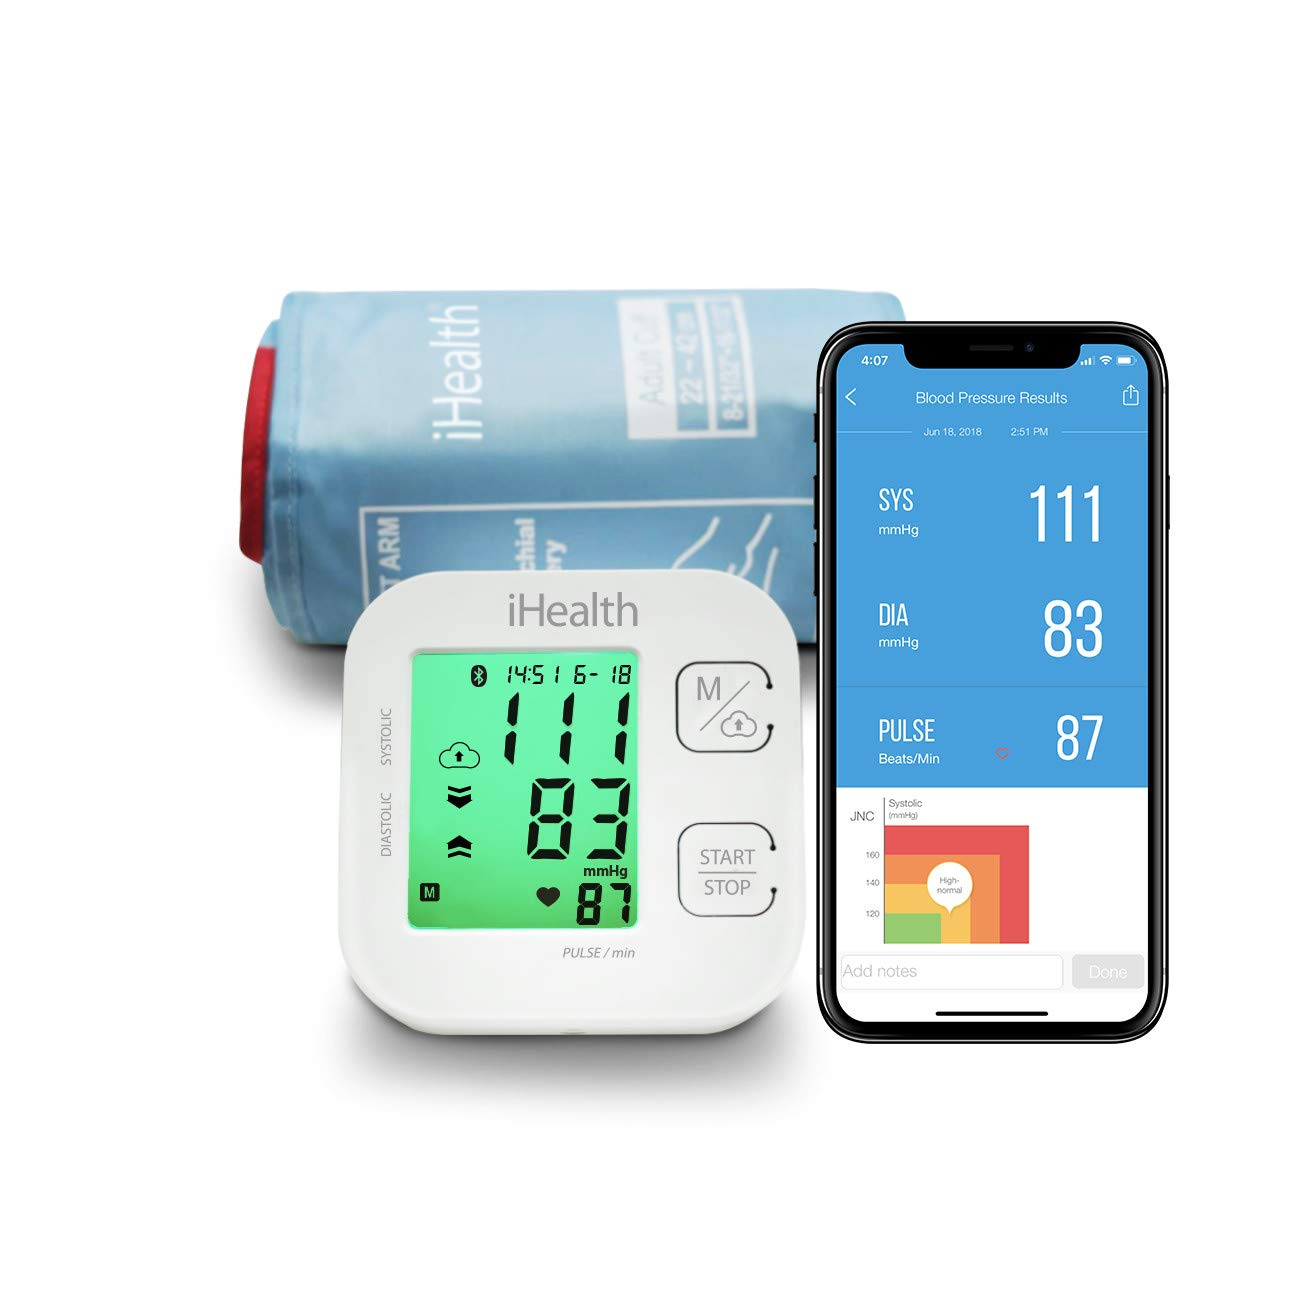 Review of iHealth Track Wireless Bluetooth Blood Pressure Monitor Cuff